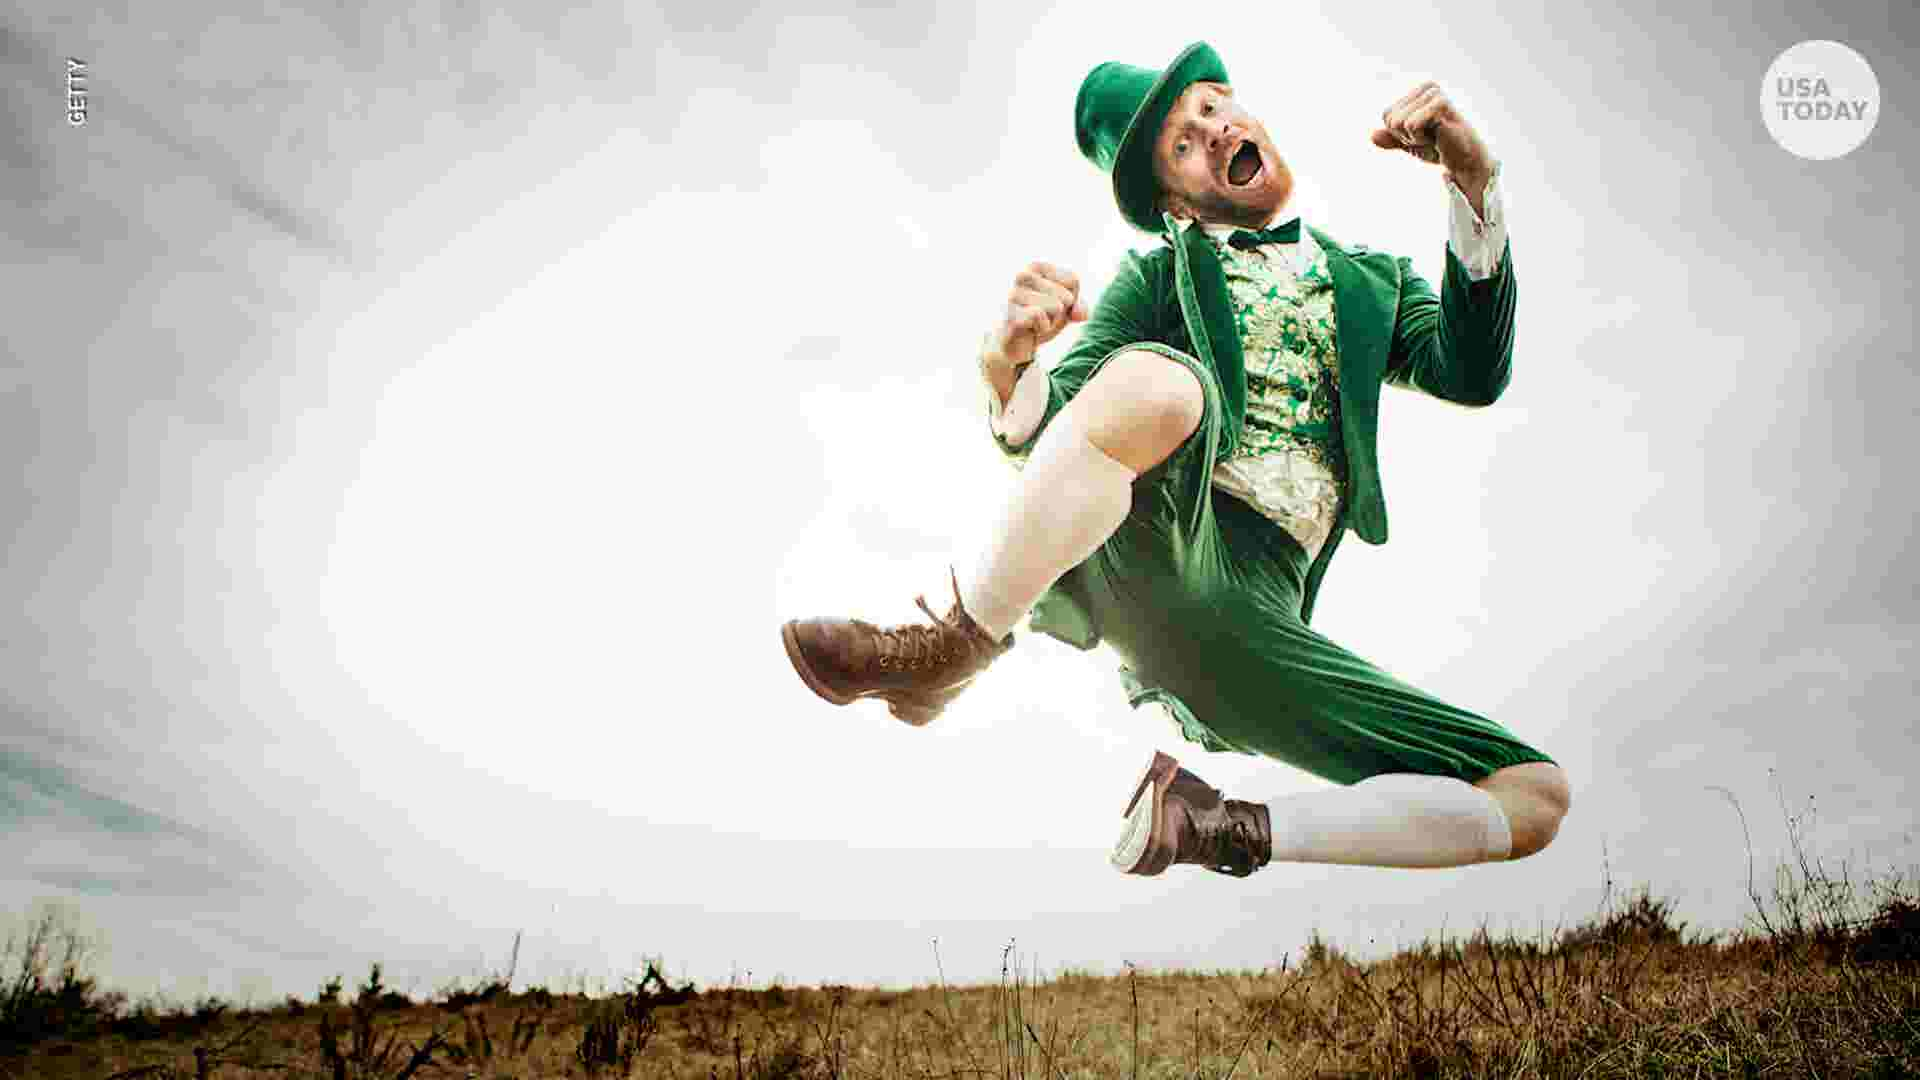 cdc6e3e32 Get lucky this St. Patrick s Day! Where to find green food